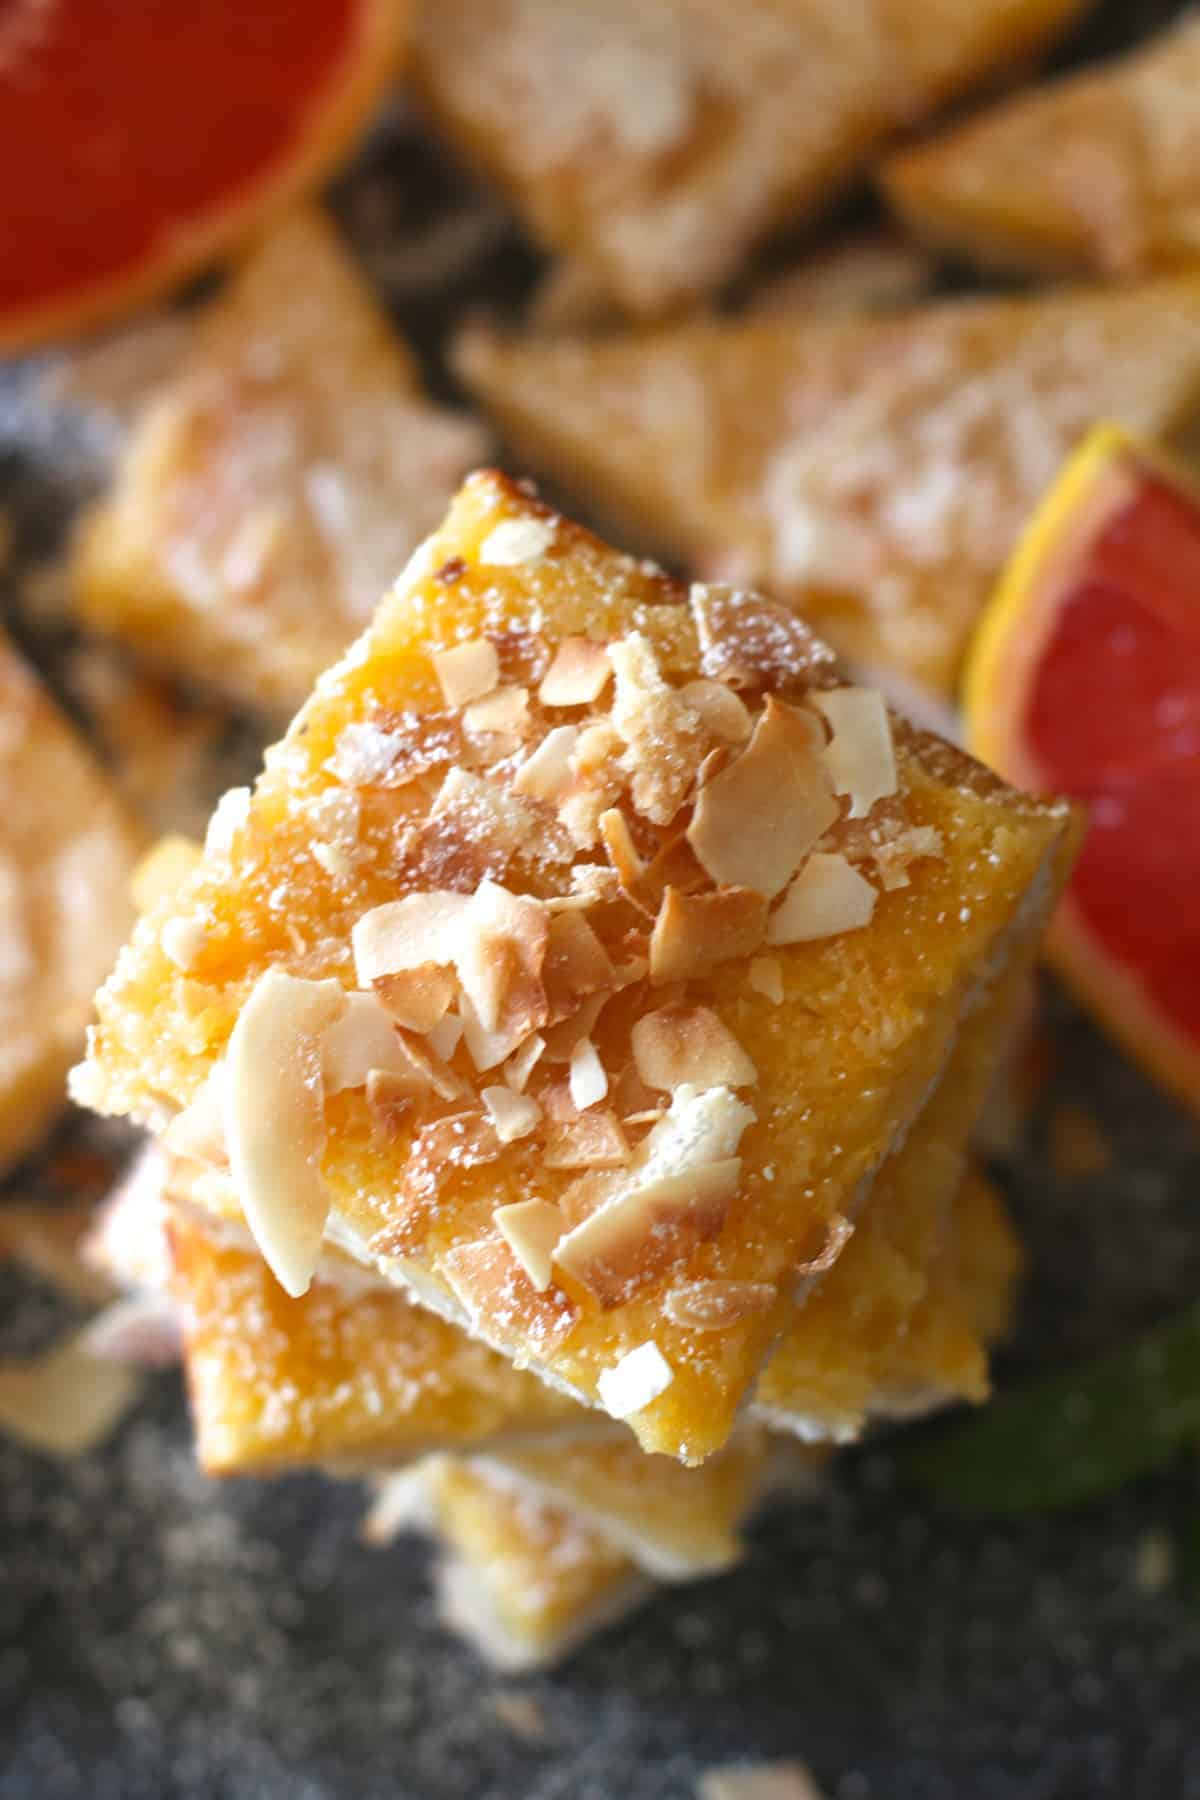 A twist on the traditional lemon bars these bars combine tangy grapefruit with a coconut shortbread crust